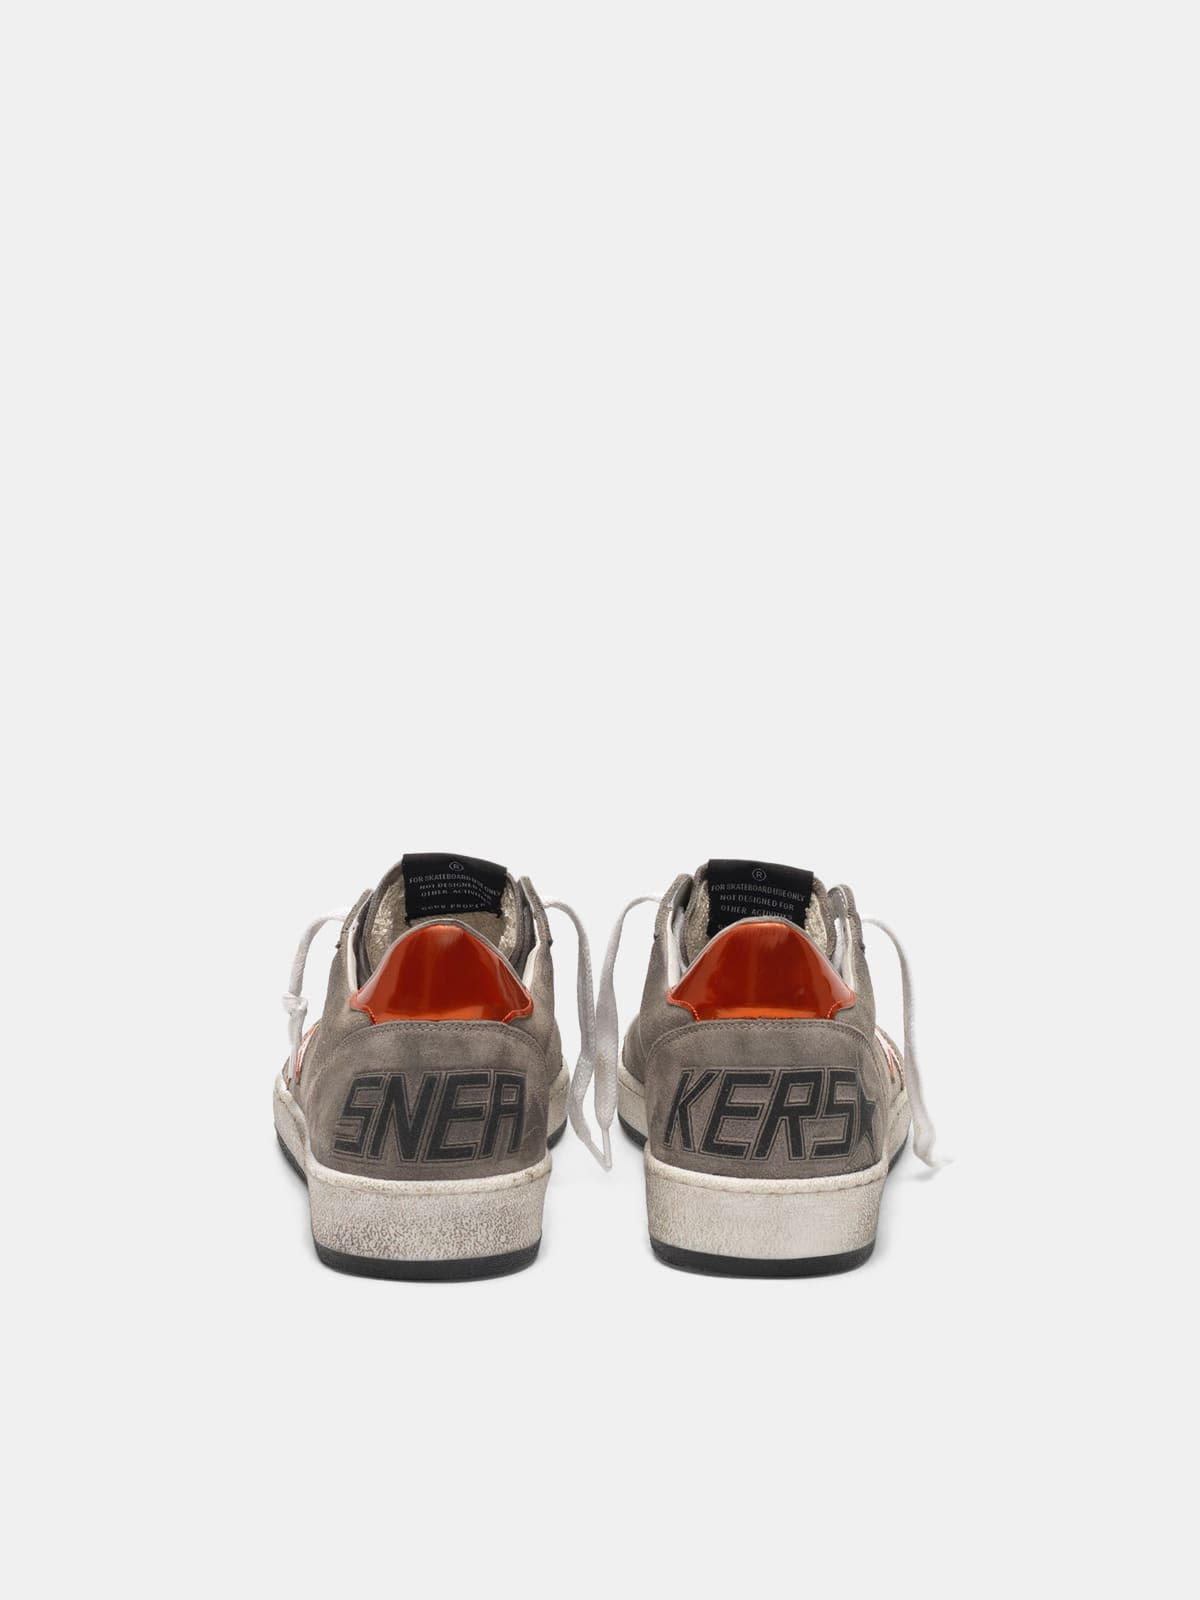 Ball Star sneakers in grey suede with orange star